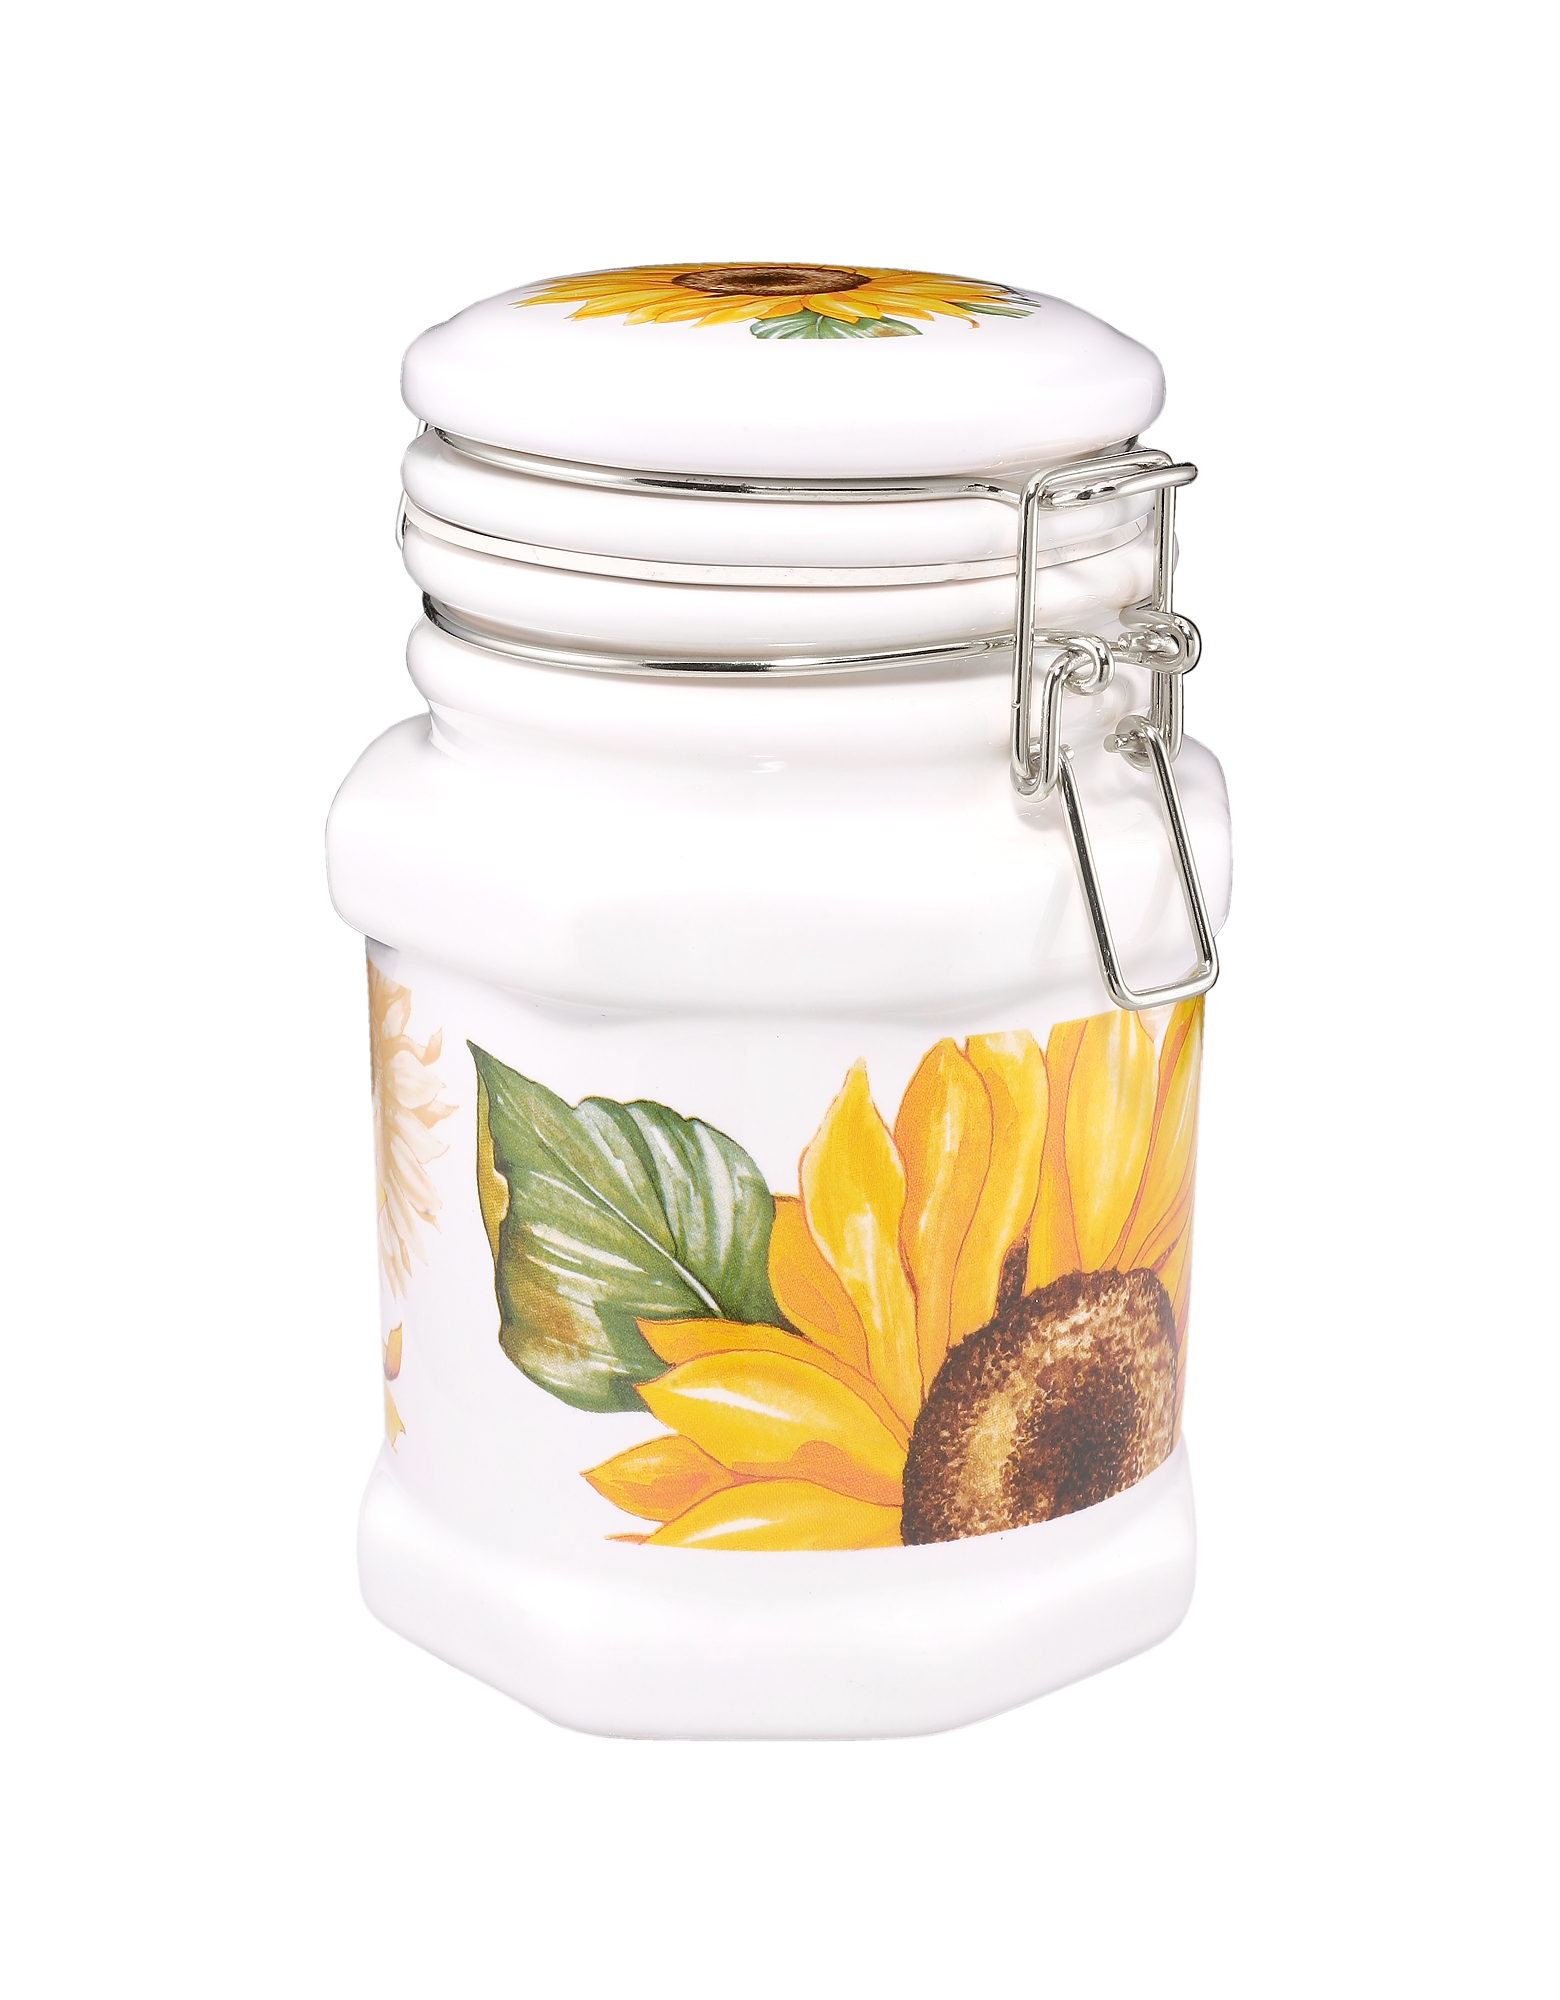 Spigarelli Designer Kitchen & Dining, Sunflower Airtight Seal Ceramic Canister